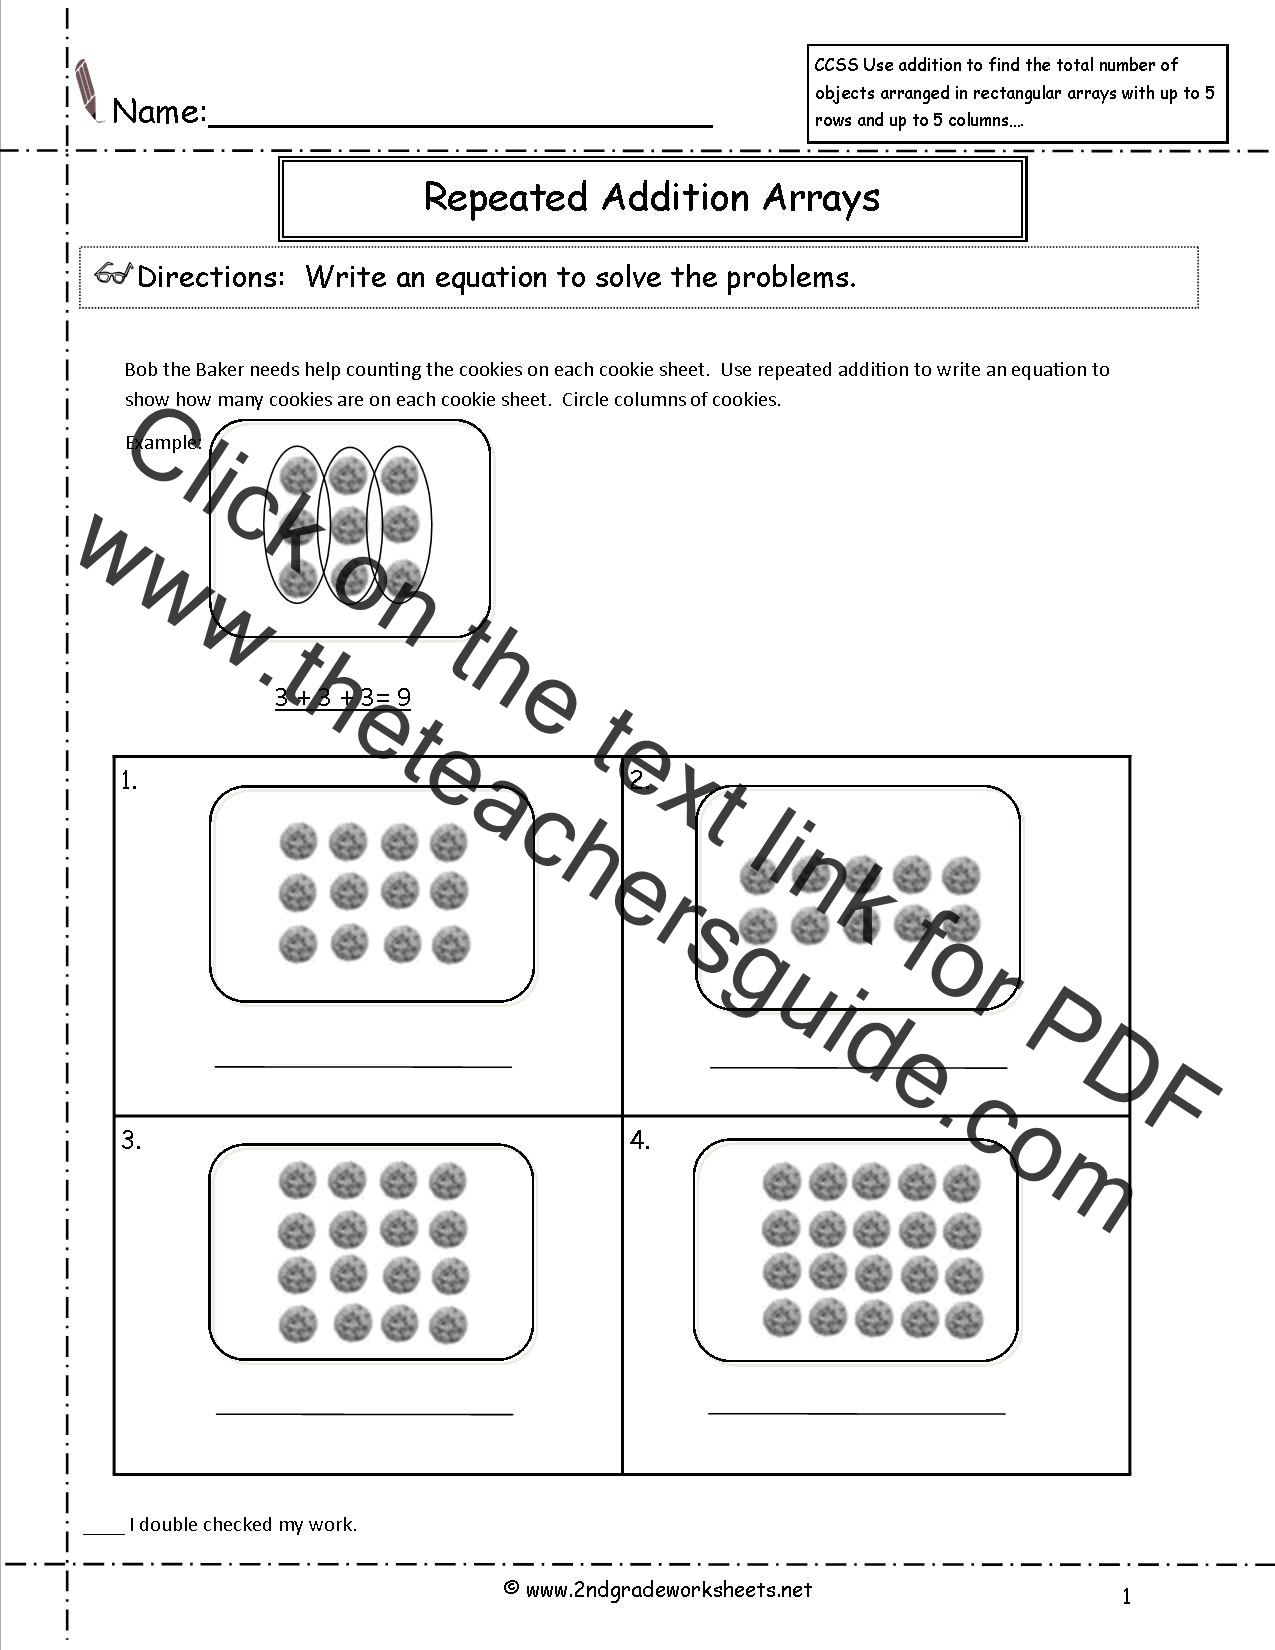 Common Core Math Worksheets - 4th Grade | Common cores, Math ...